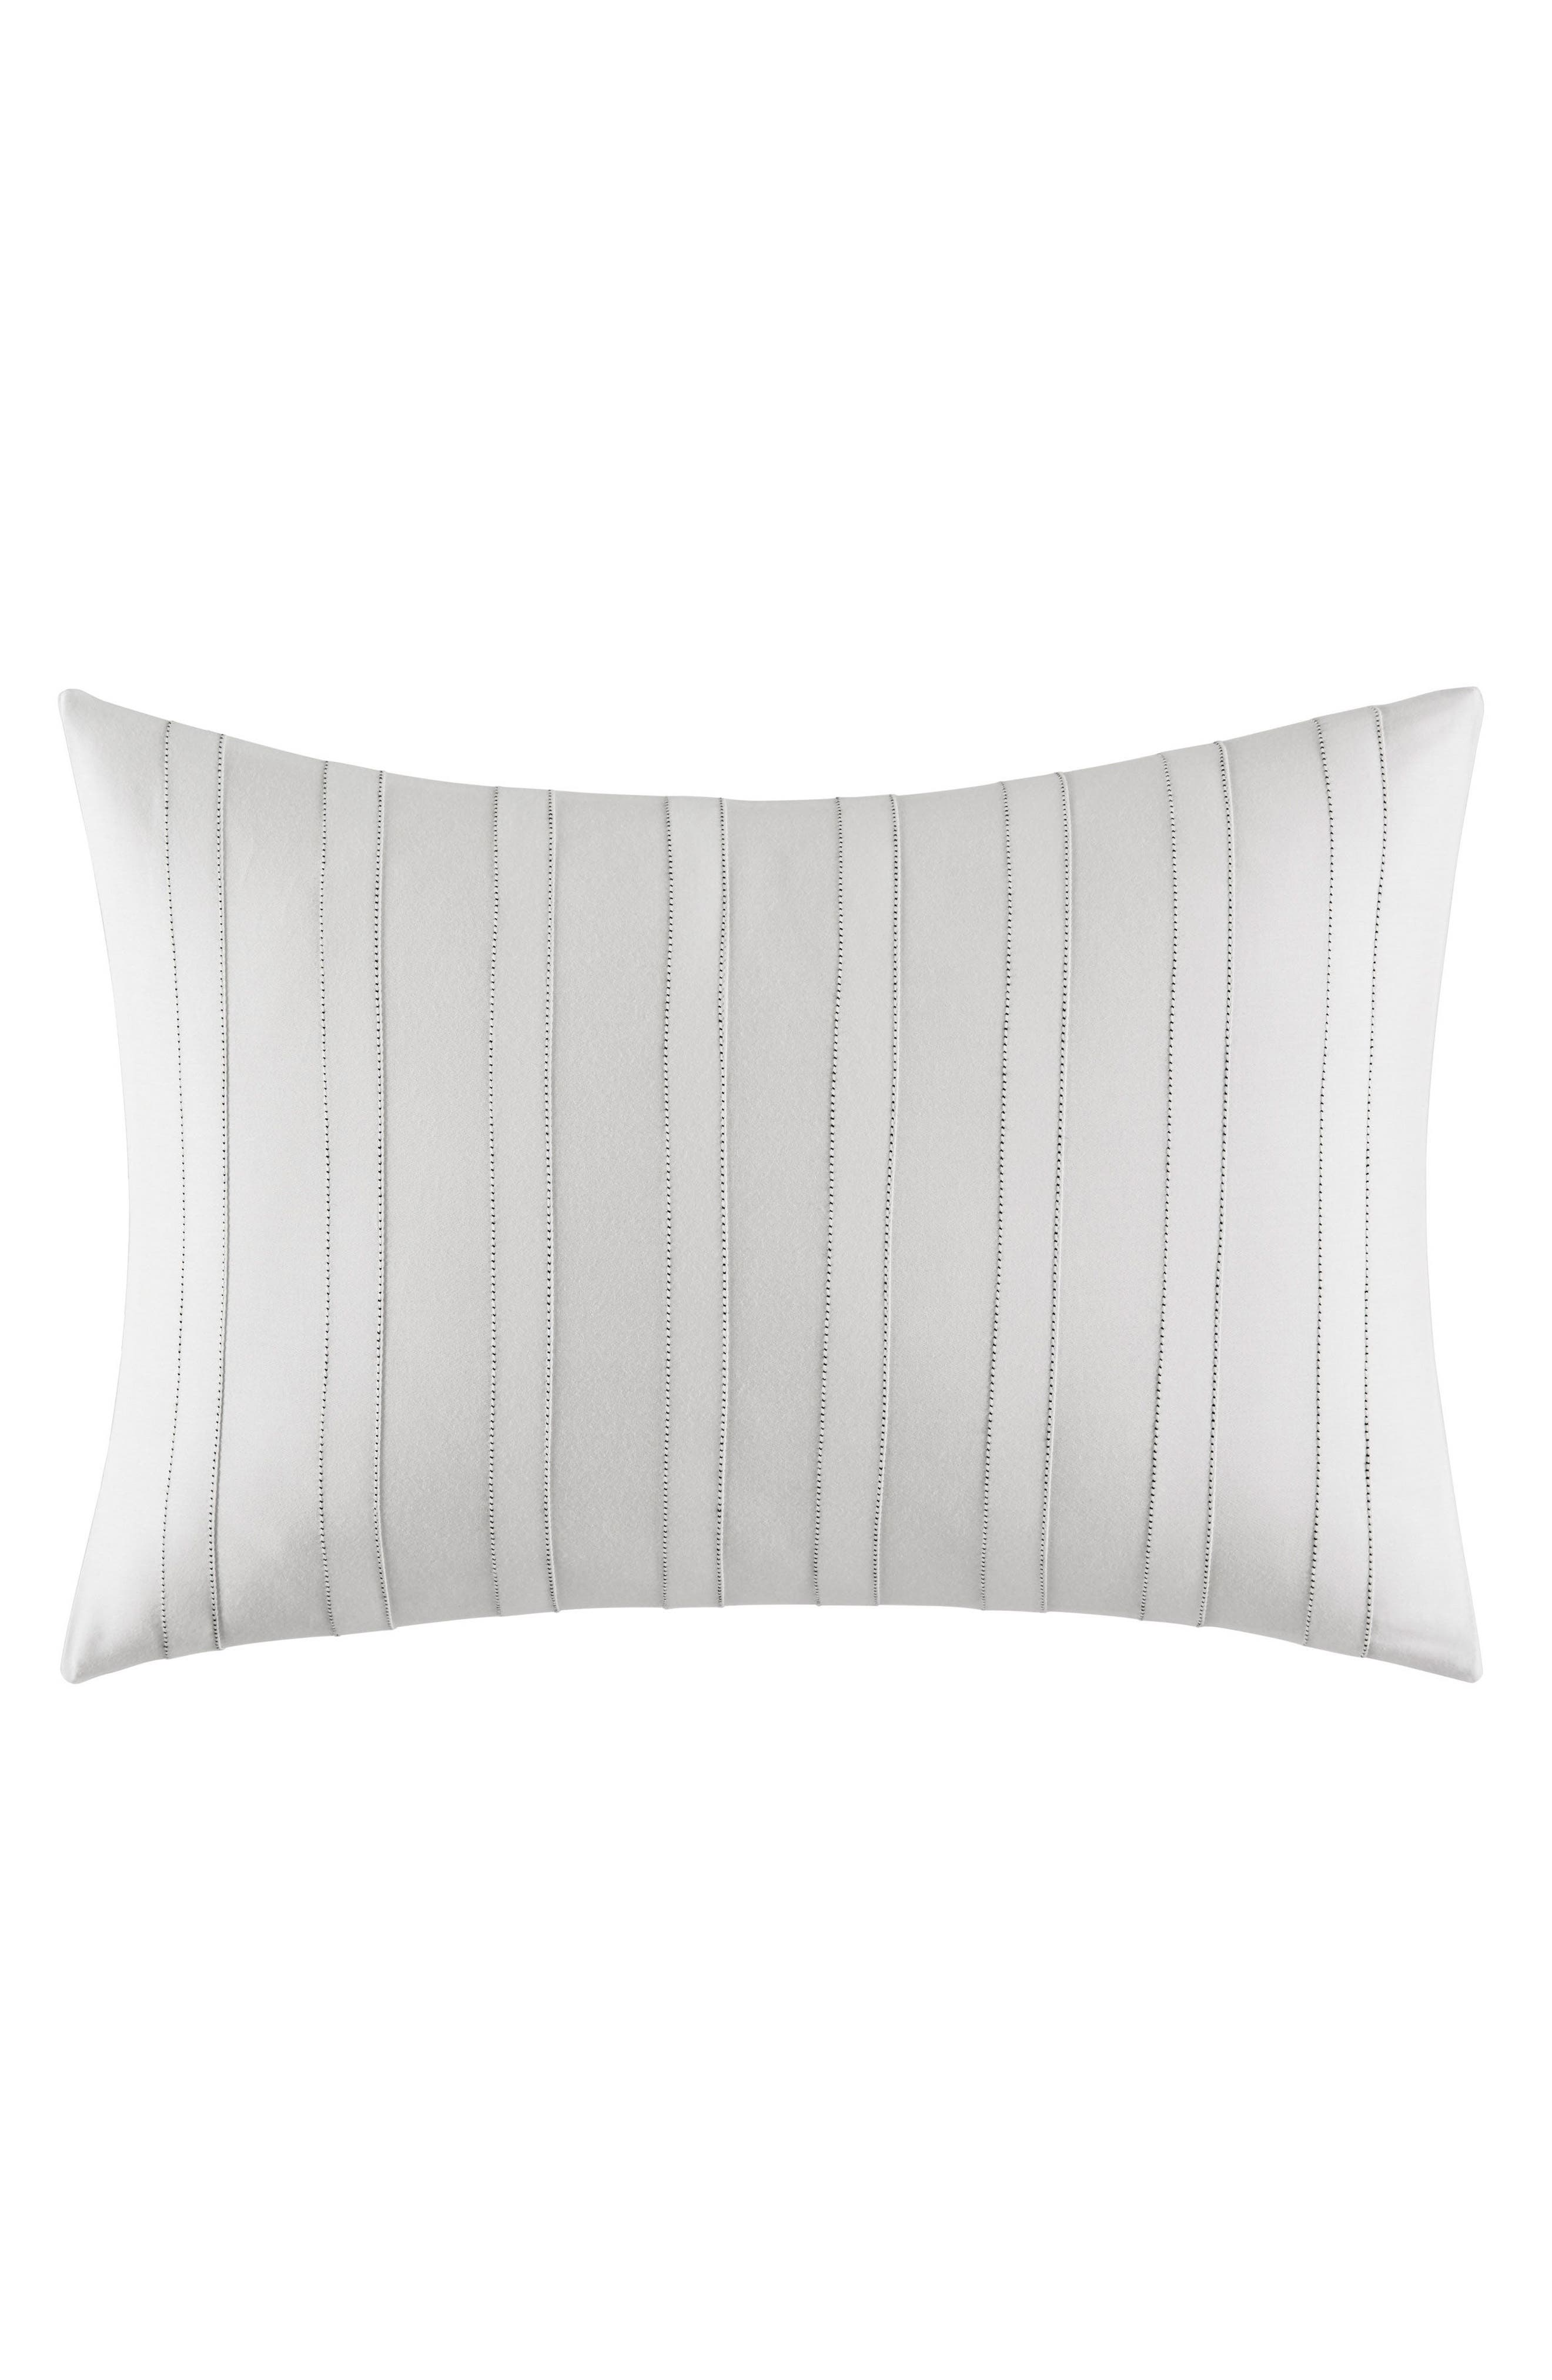 Vera Wang Mirrored Square Breakfast Accent Pillow